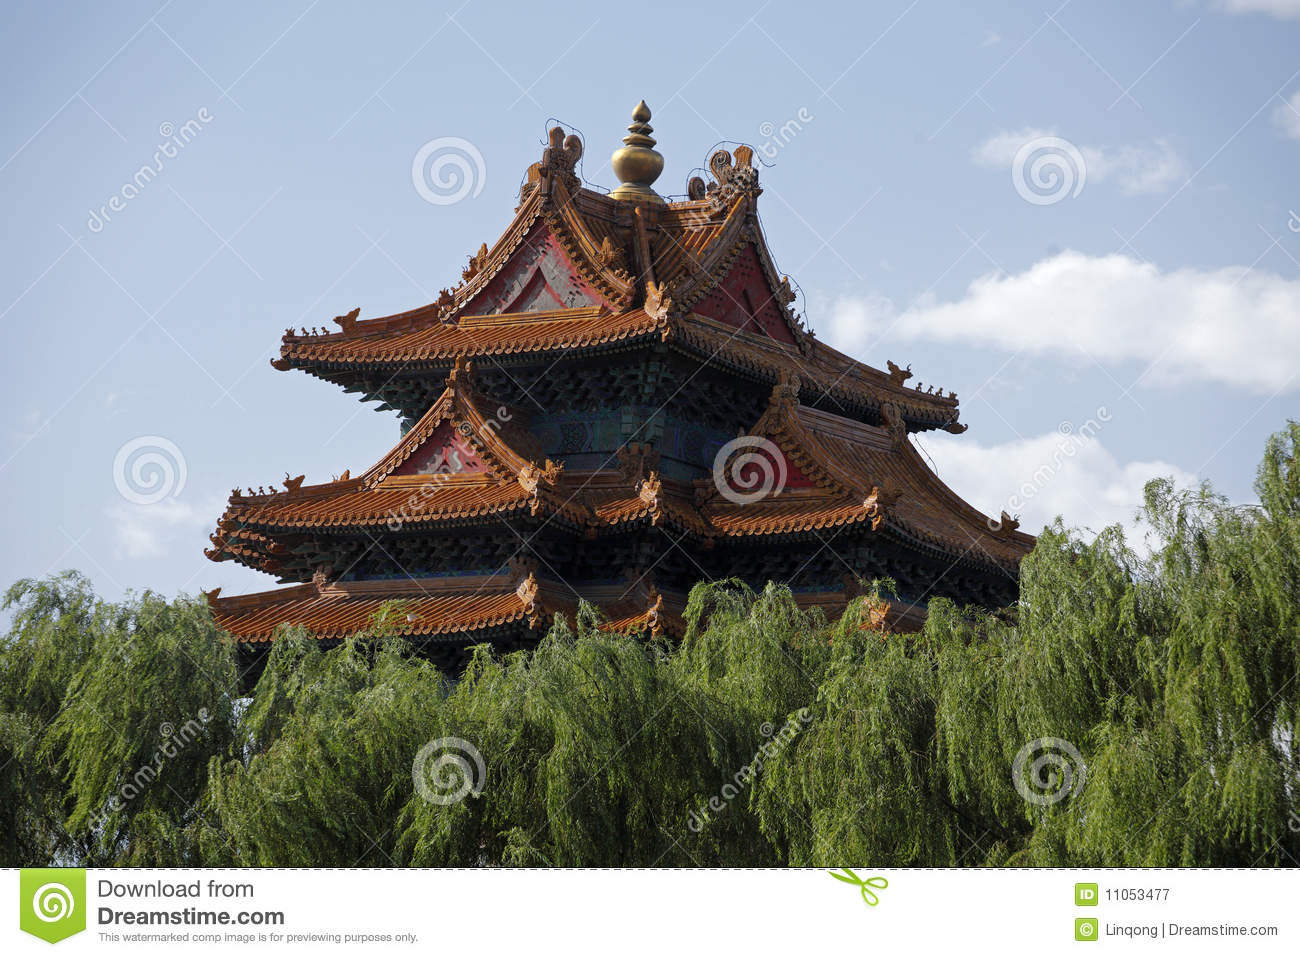 Constructions antiques chinoises